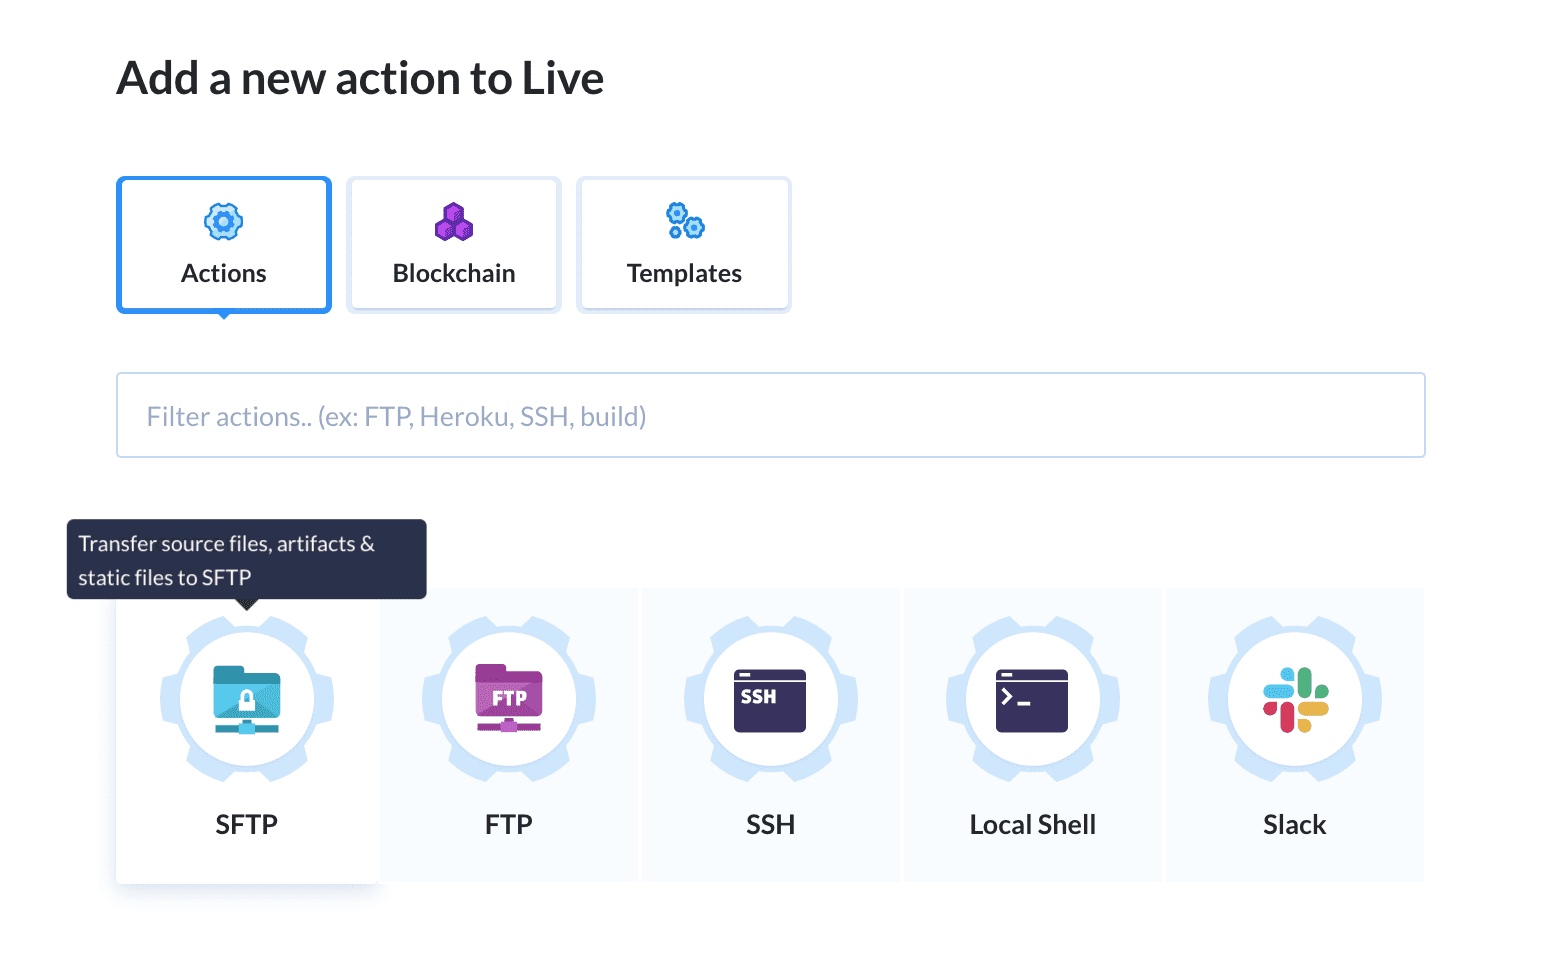 Selecting the upload action